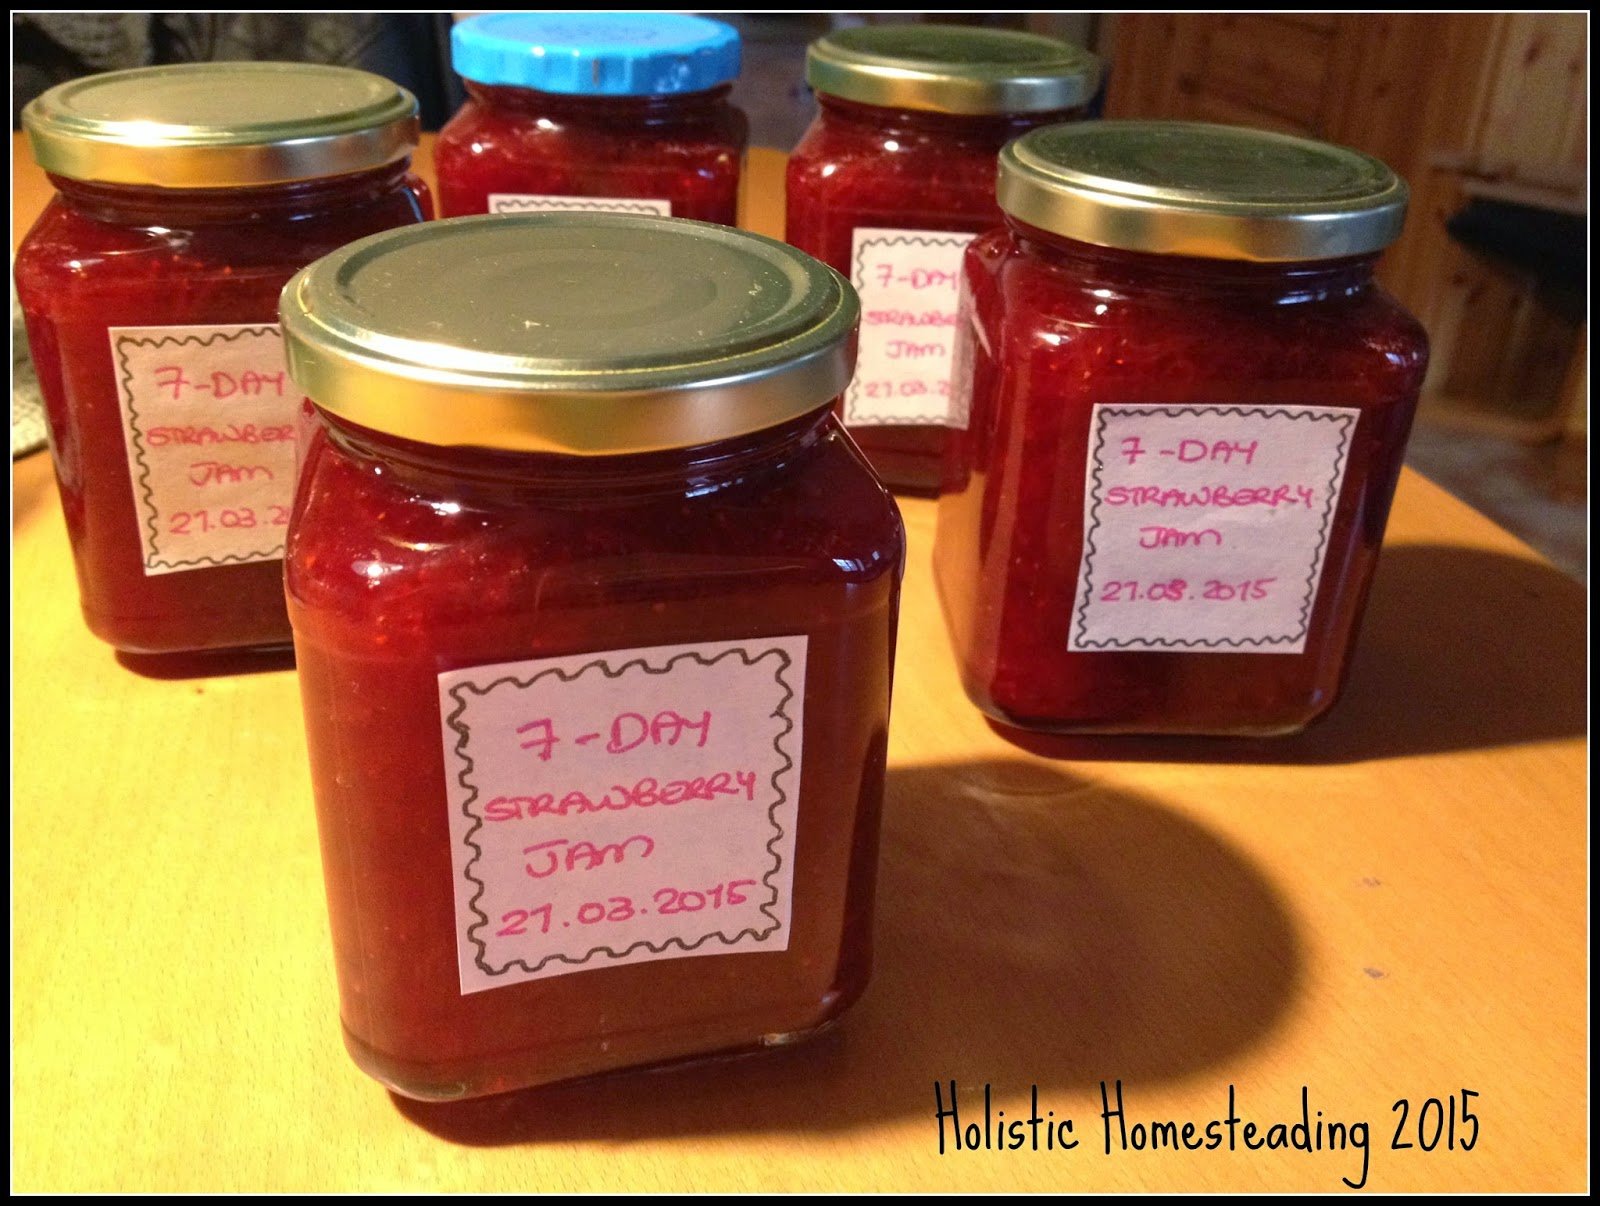 7 day strawberry jam